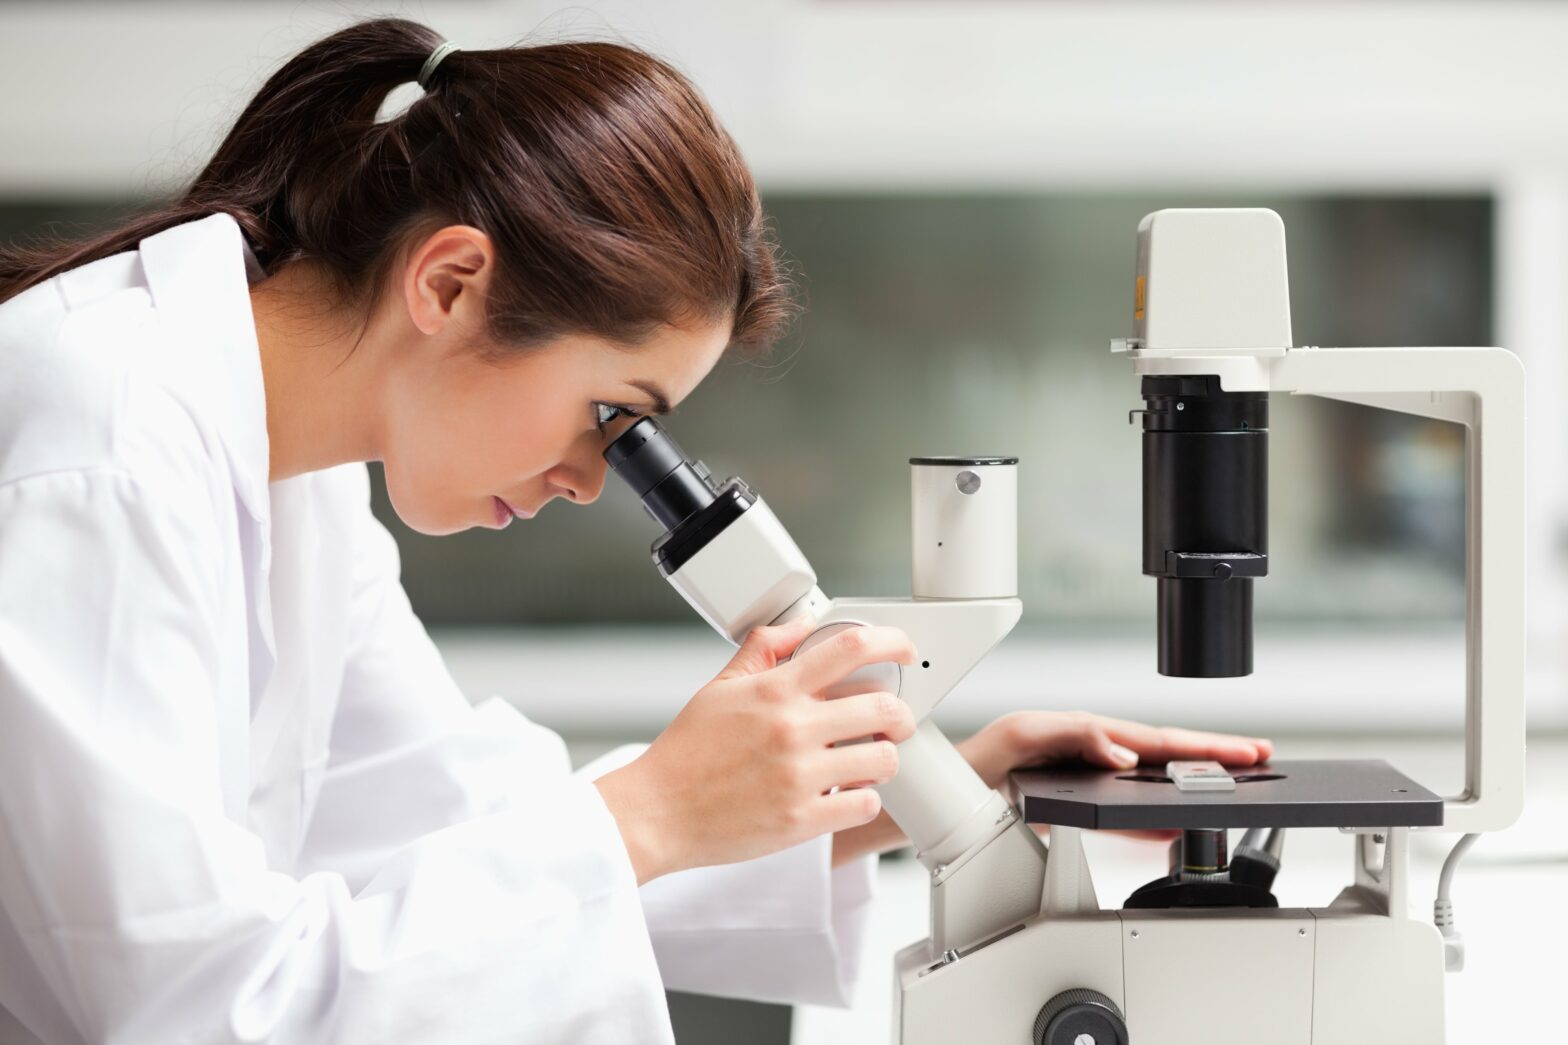 scientific evidence to fix cells in ear